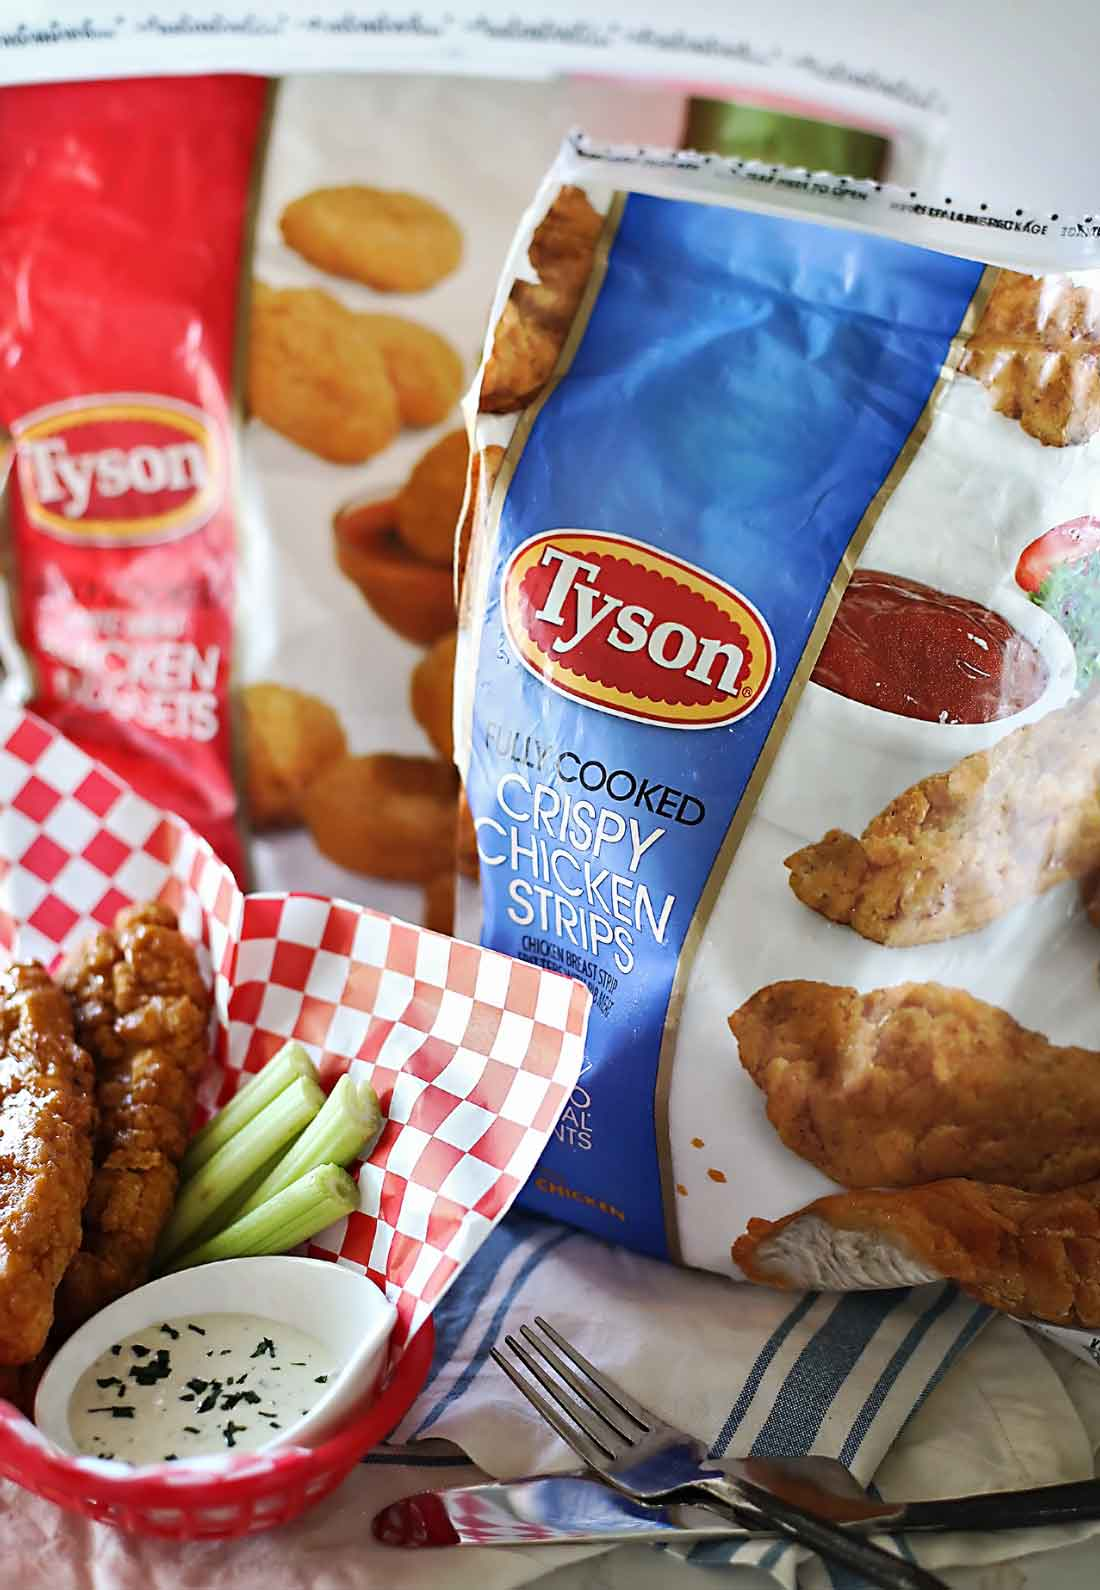 Sticky Fingers recipe with Frozen chicken strips by Flirting with Flavor